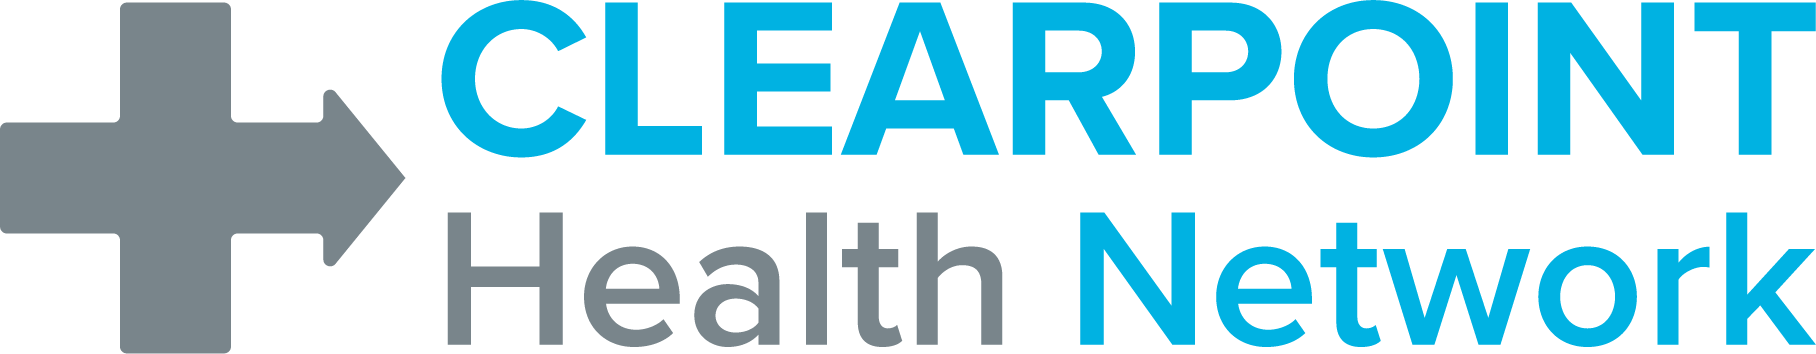 Clearpoint Health Network logo